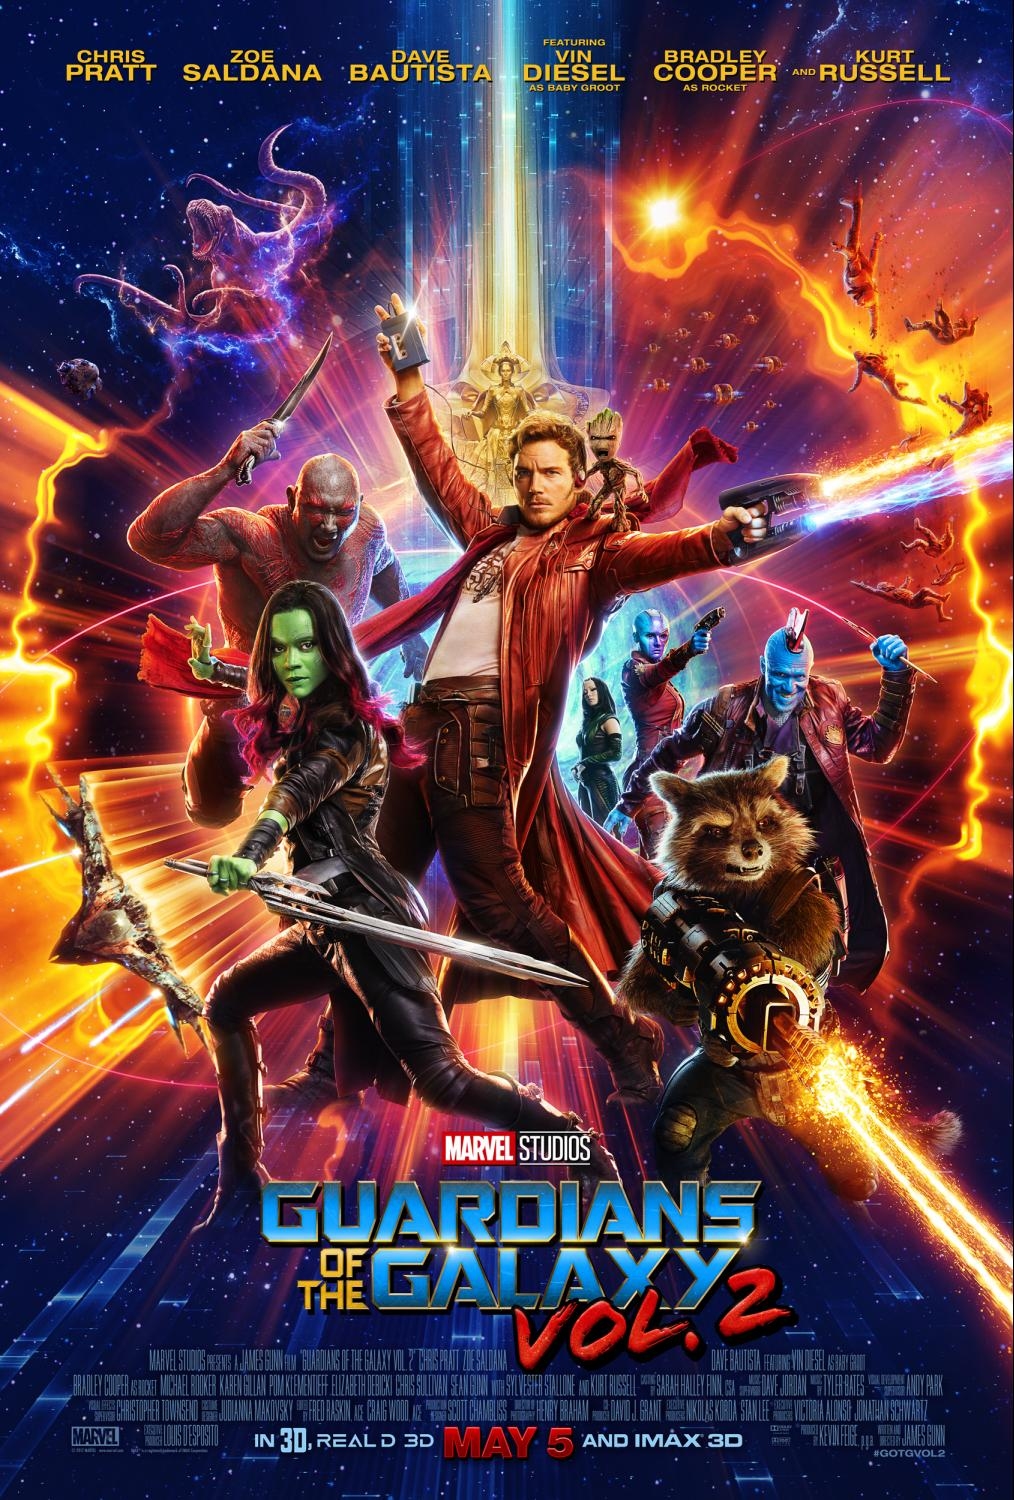 Advance tickets on sale now for Marvel Studios' GUARDIANS OF THE GALAXY VOL. 2